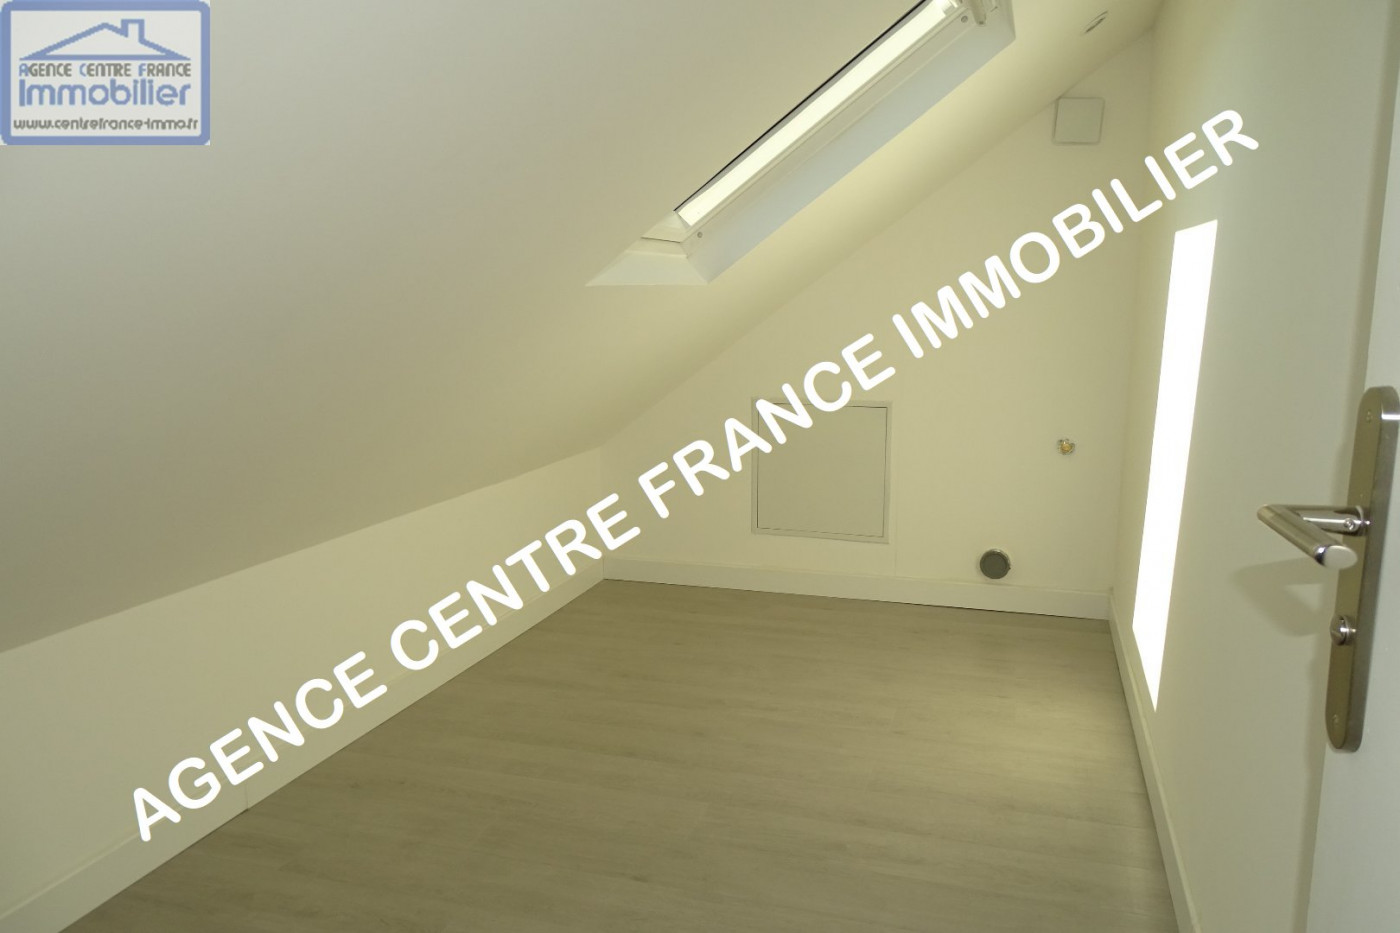 A vendre Bourges 030011158 Agence centre france immobilier